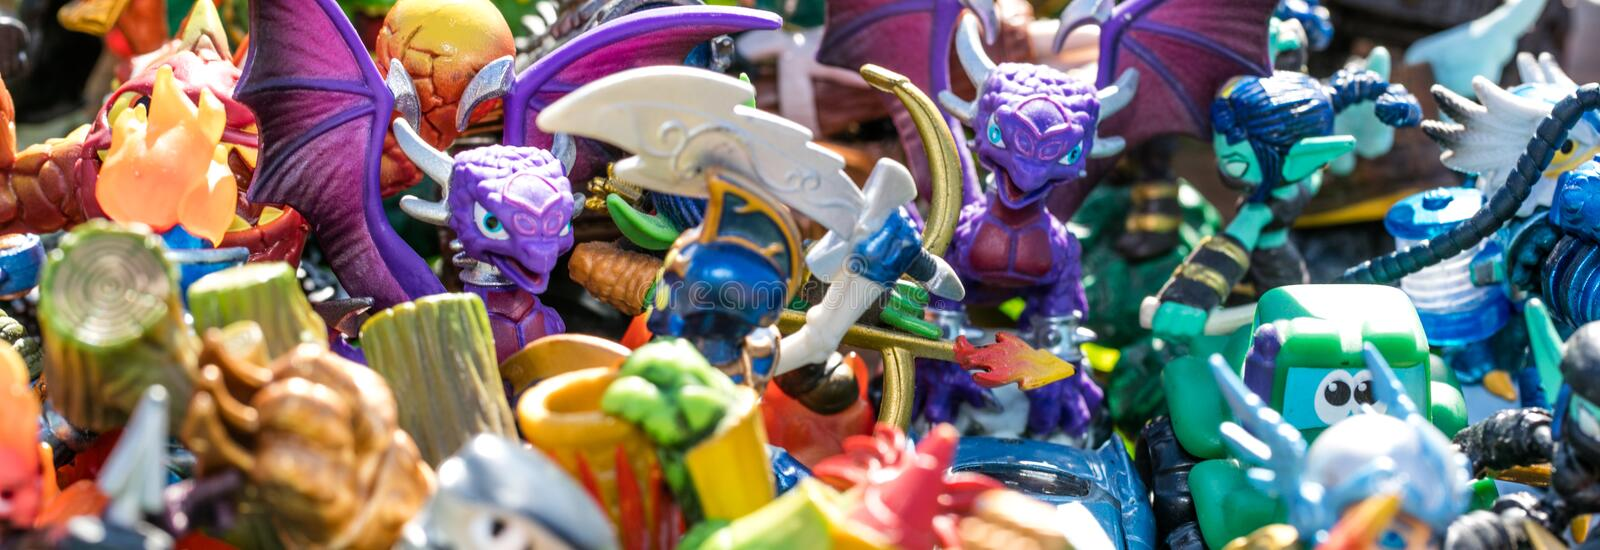 Closeup of pile of plastic characters for waste or consumption royalty free stock photo